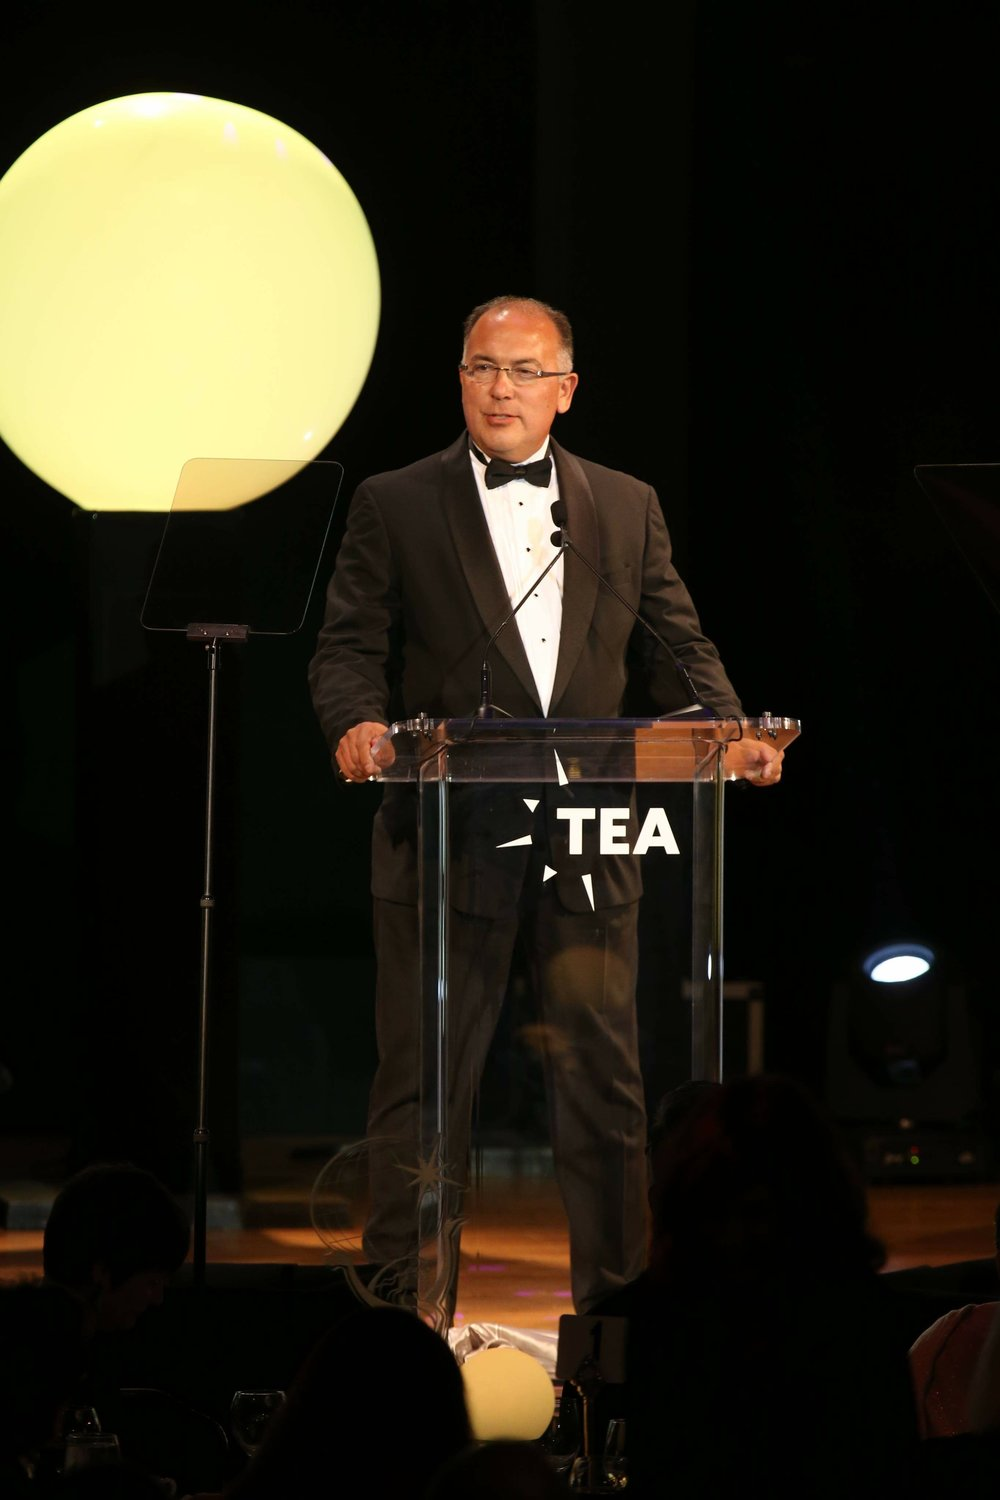 Anthony Esparza has produced, directed, or led teams for multiple projects that have received TEA Thea Awards. The Thea Award is a prestigious industry honor reserved for projects that exemplify the highest standards of excellence and achievement.